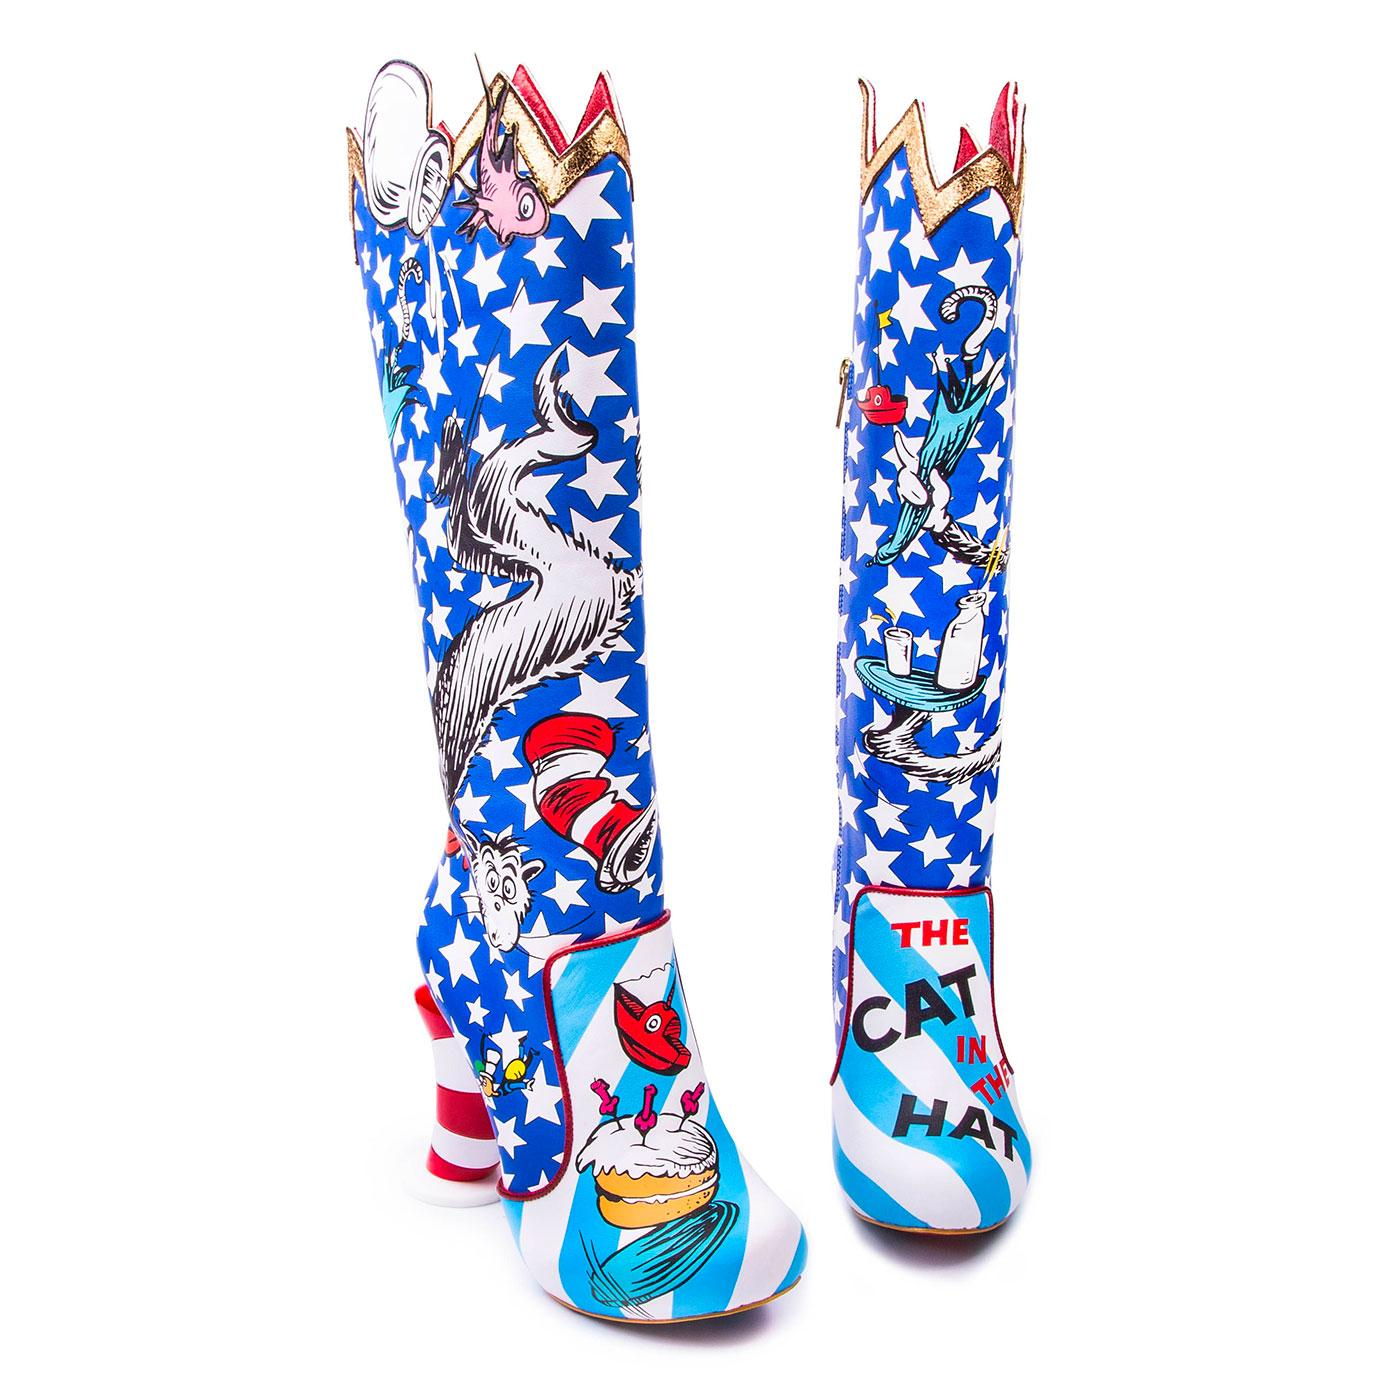 IRREGULAR CHOICE x DR SEUSS Cat in The Hat Boots